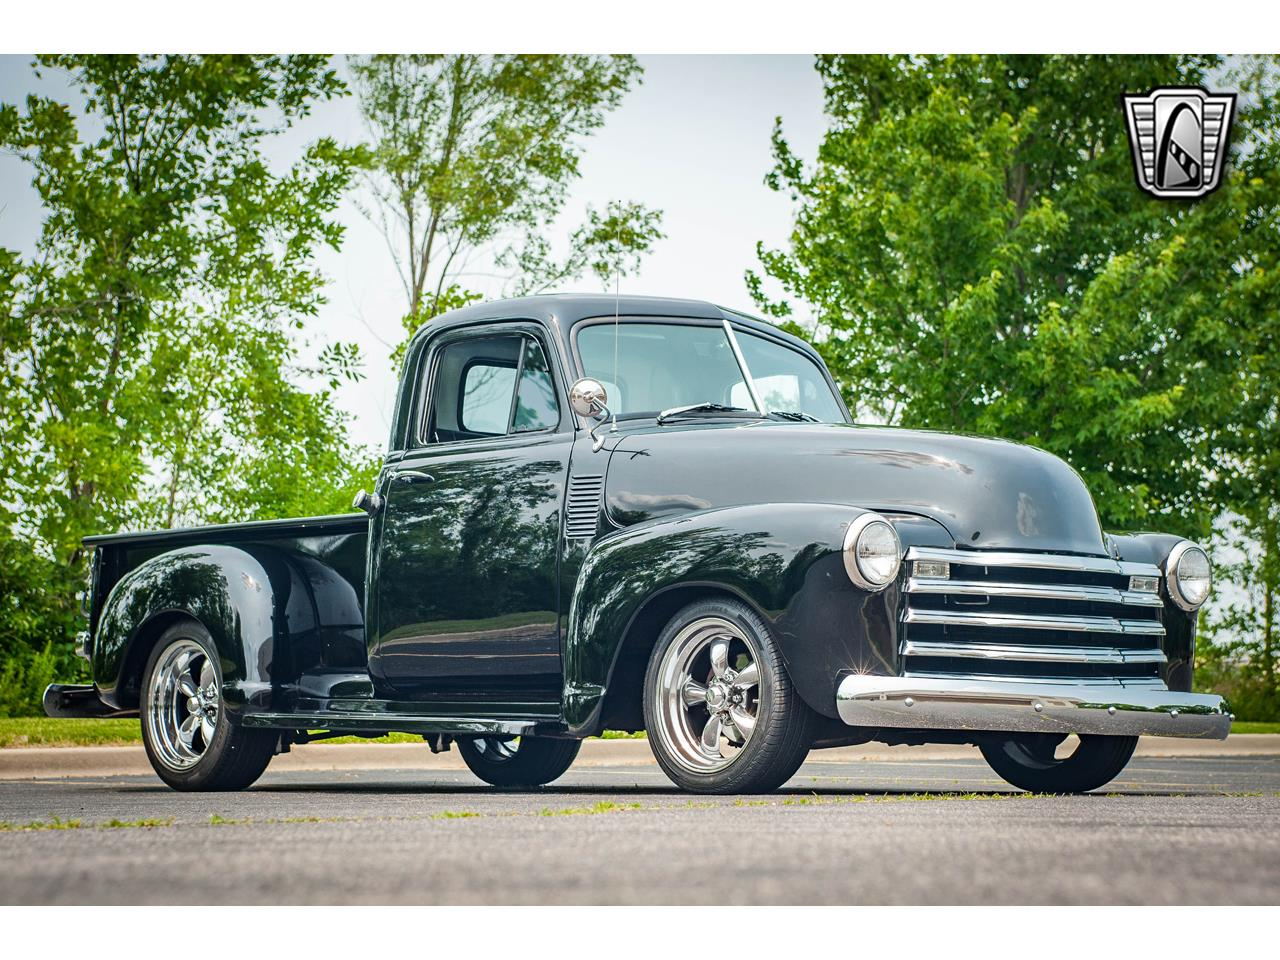 Large Picture of 1948 Chevrolet 3100 - $42,000.00 Offered by Gateway Classic Cars - St. Louis - QBA0